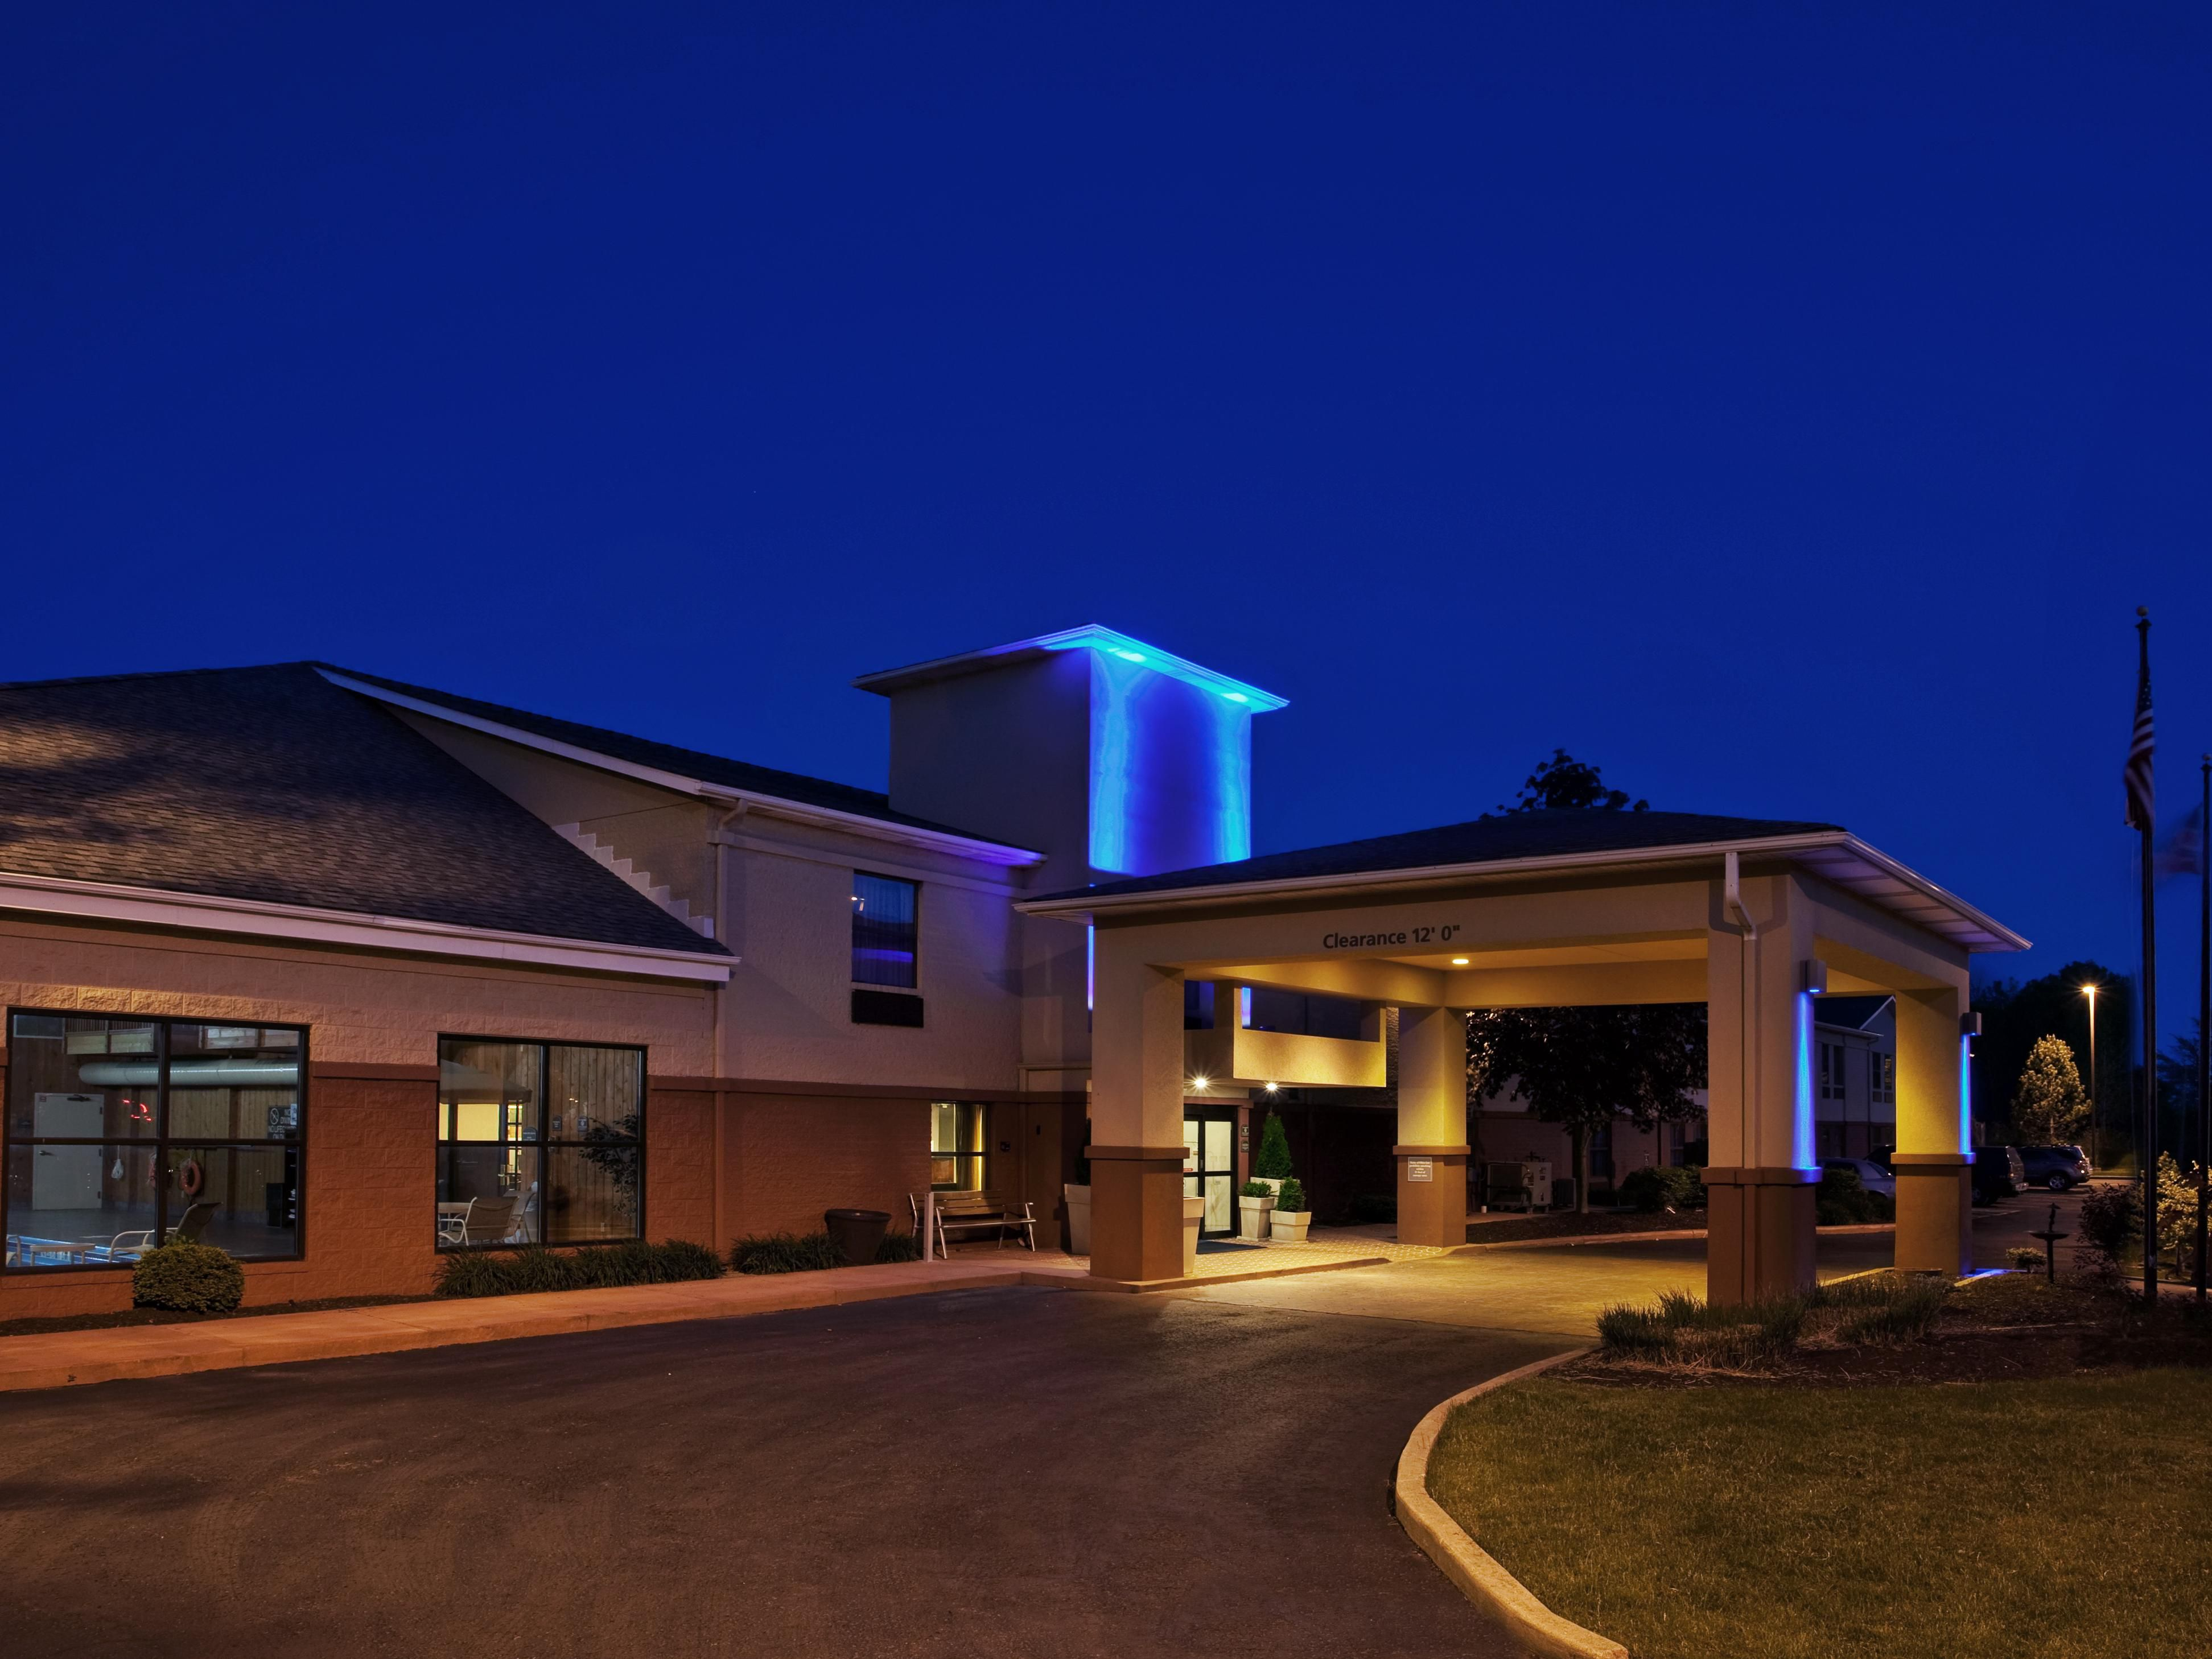 Welcome to the Holiday Inn Express-Oakwood Village Ohio